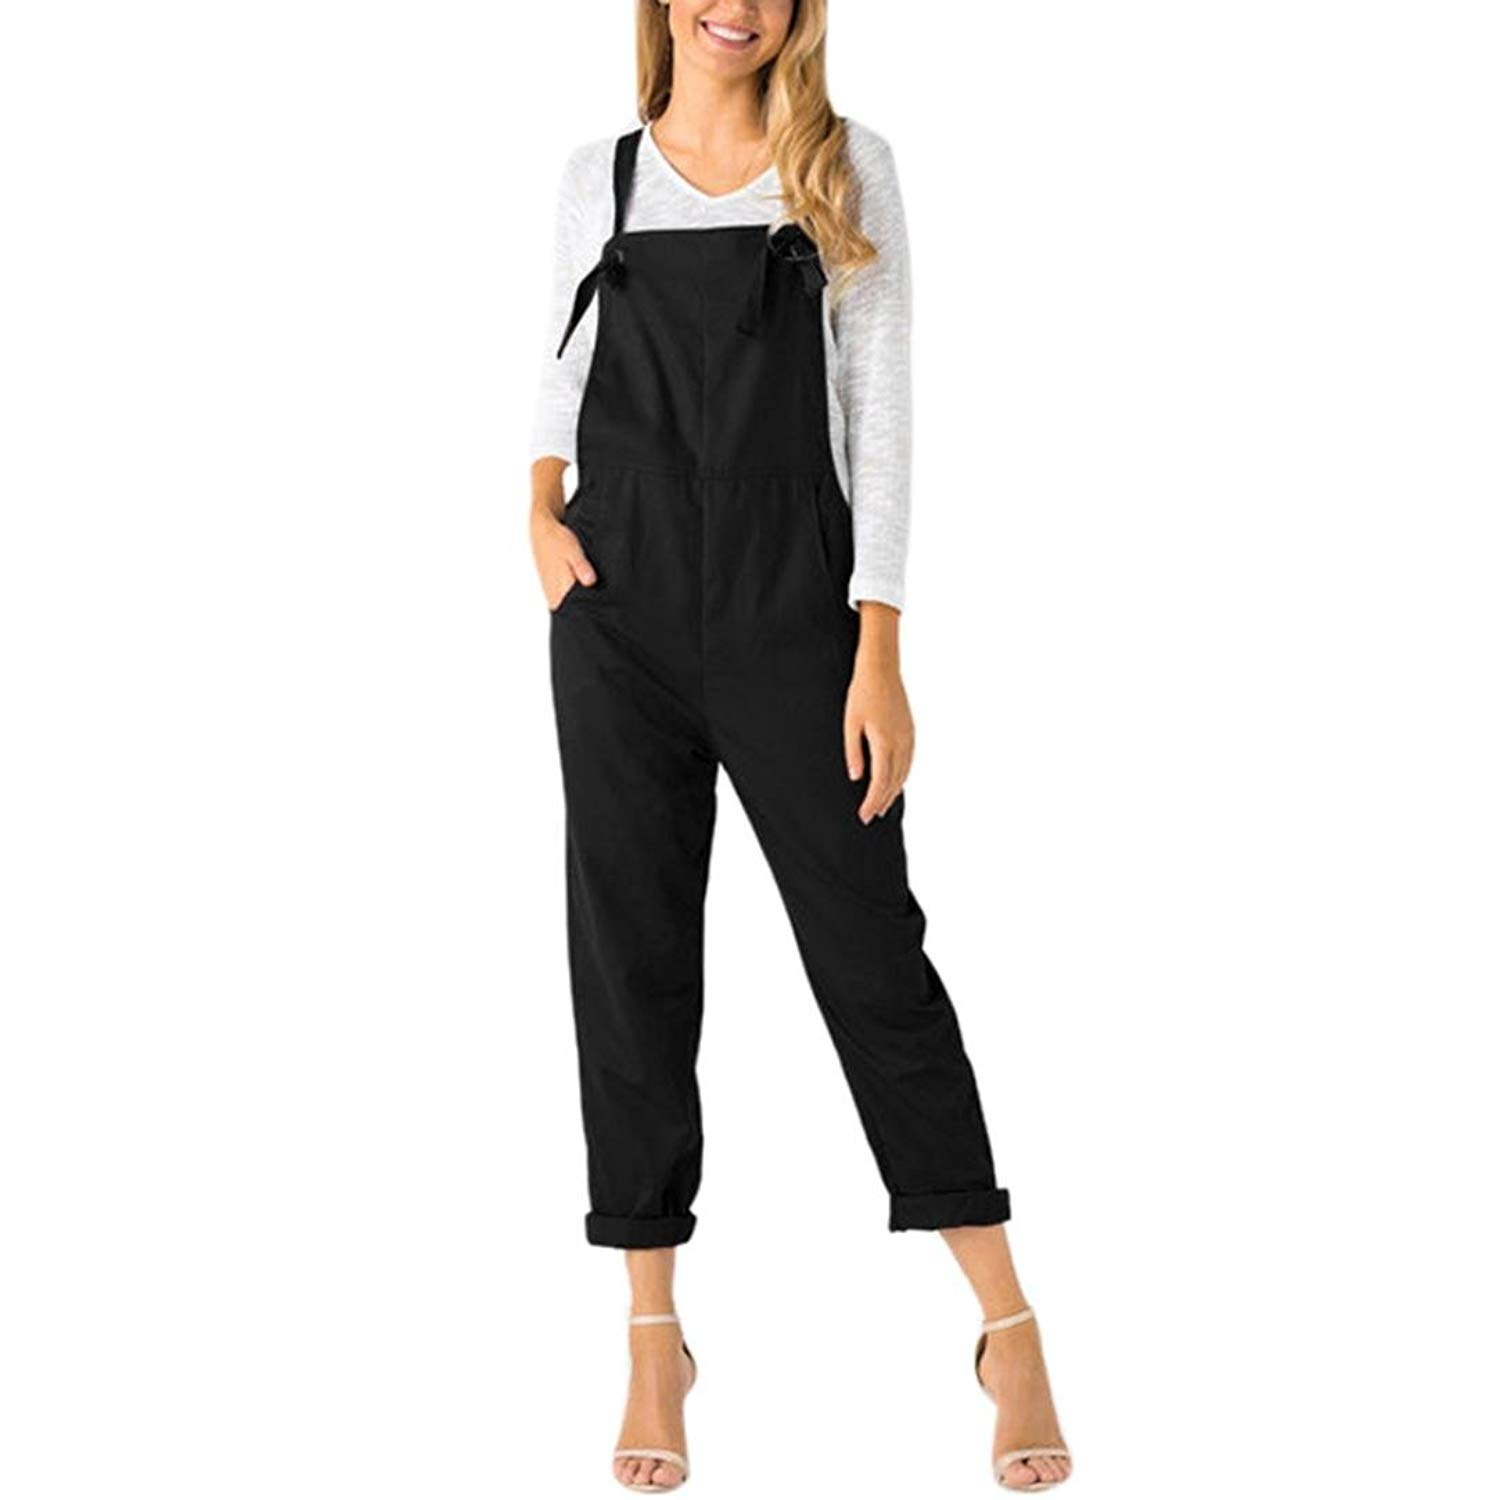 6819f9004 Get Quotations · POCCIOL Ladies Womens Soft Wearing Cotton Blend Pockets  Dungarees Rompers Jumpsuits Loose Pants Trousers